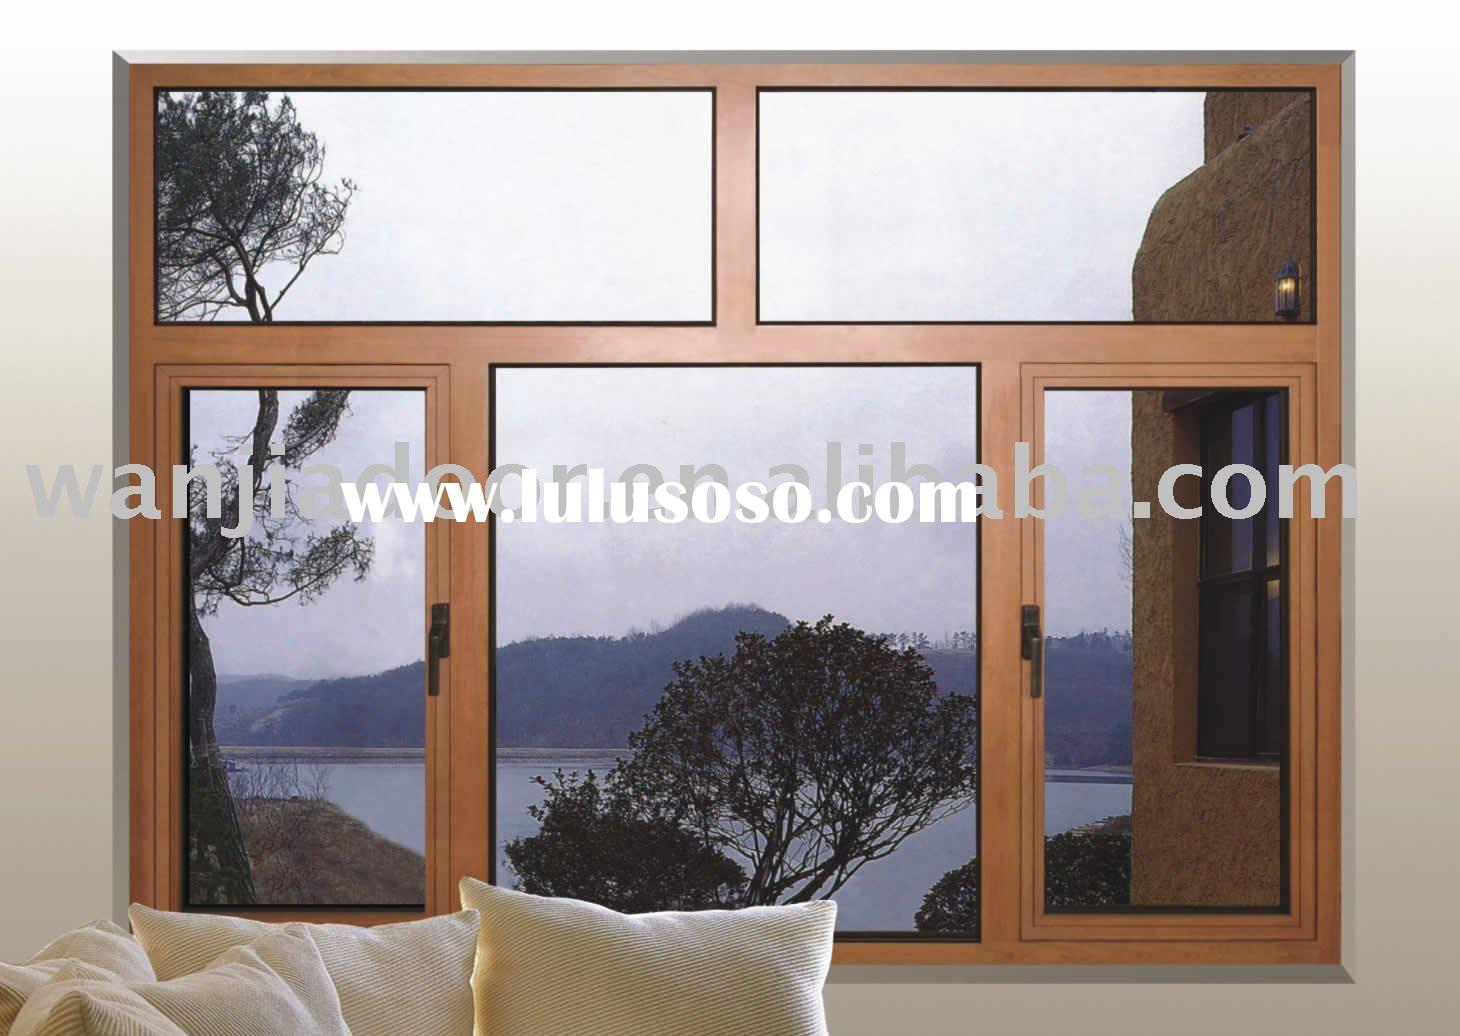 Aluminum door window aluminum door window manufacturers for Window door design